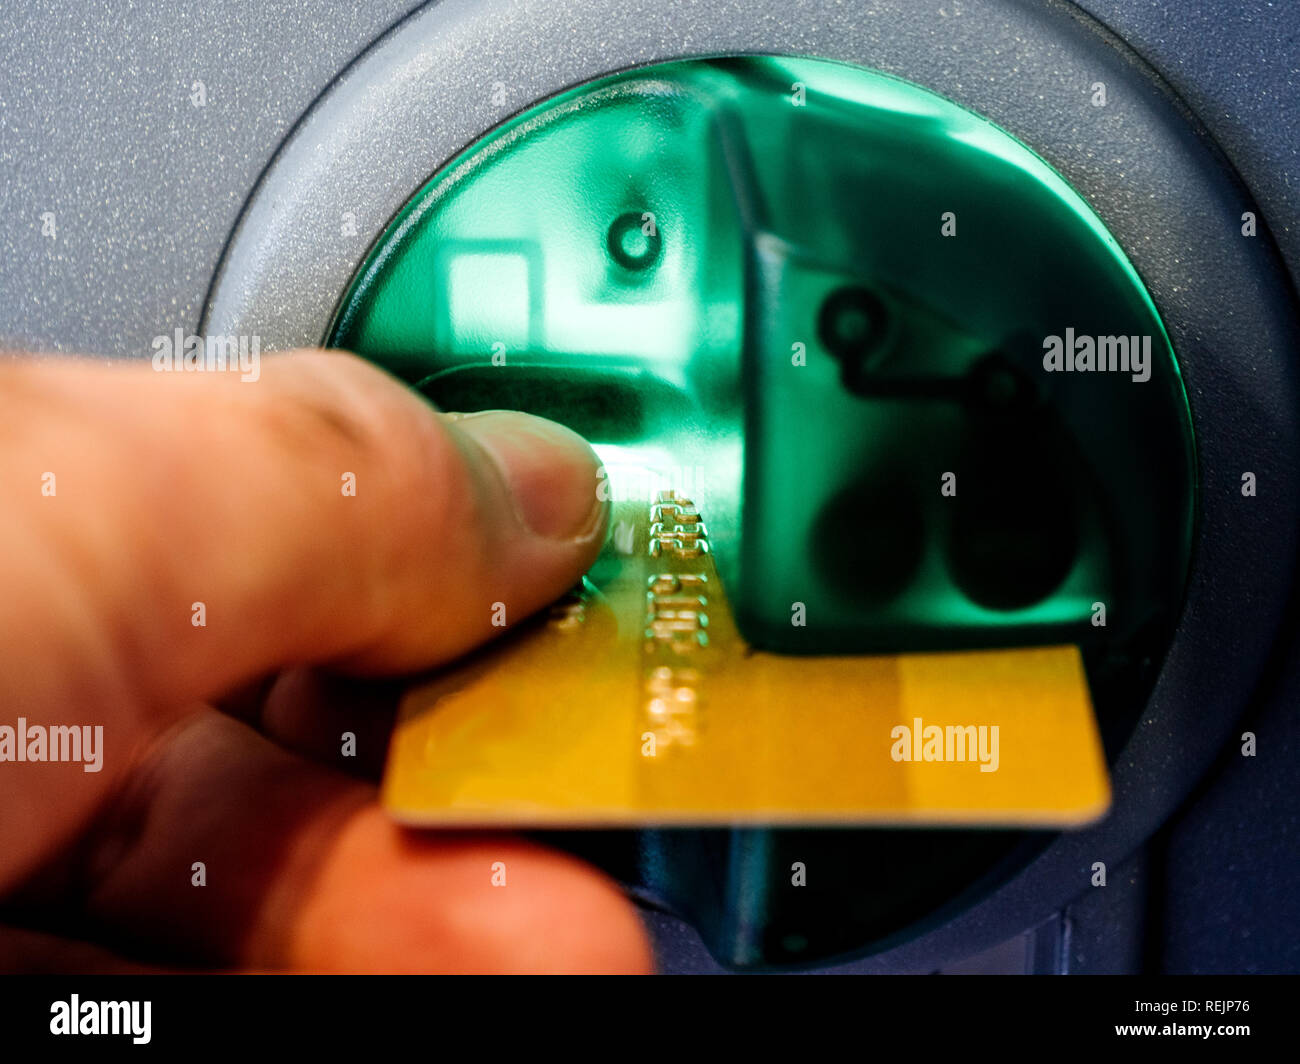 Close-up of an adult man's hand inserting a debit card into the slot of an automatic teller machine (ATM) enabling him to perform financial transactions without the need for direct interaction with the bank staff. - Stock Image